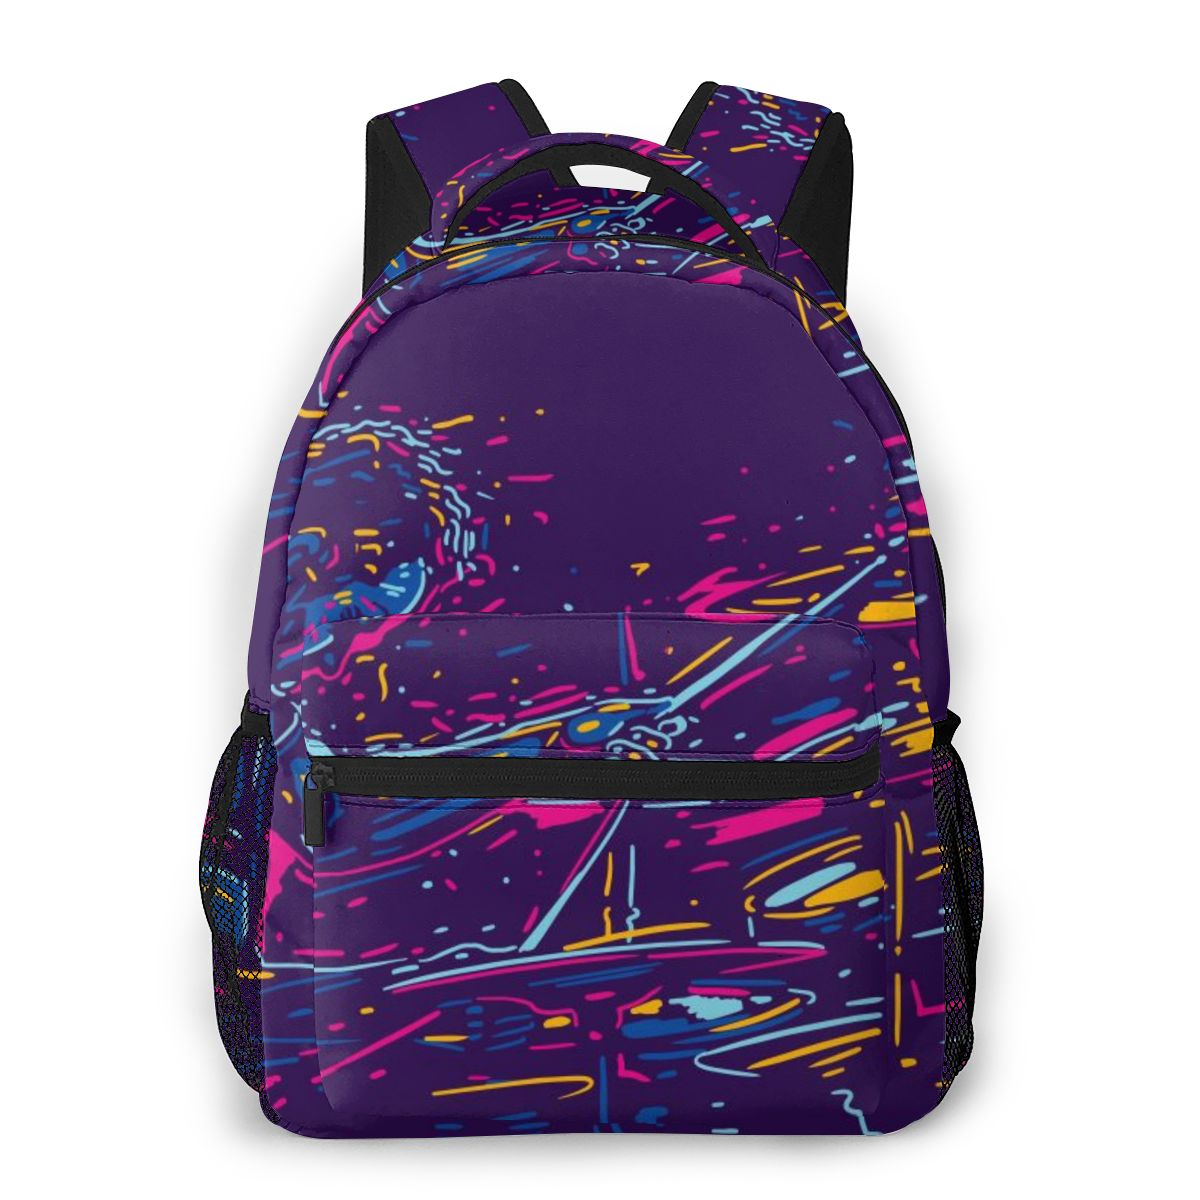 2020 New Style Backpack Boy Teenagers Nursery School bag Abstract Rock Drummer Player back to school bag image